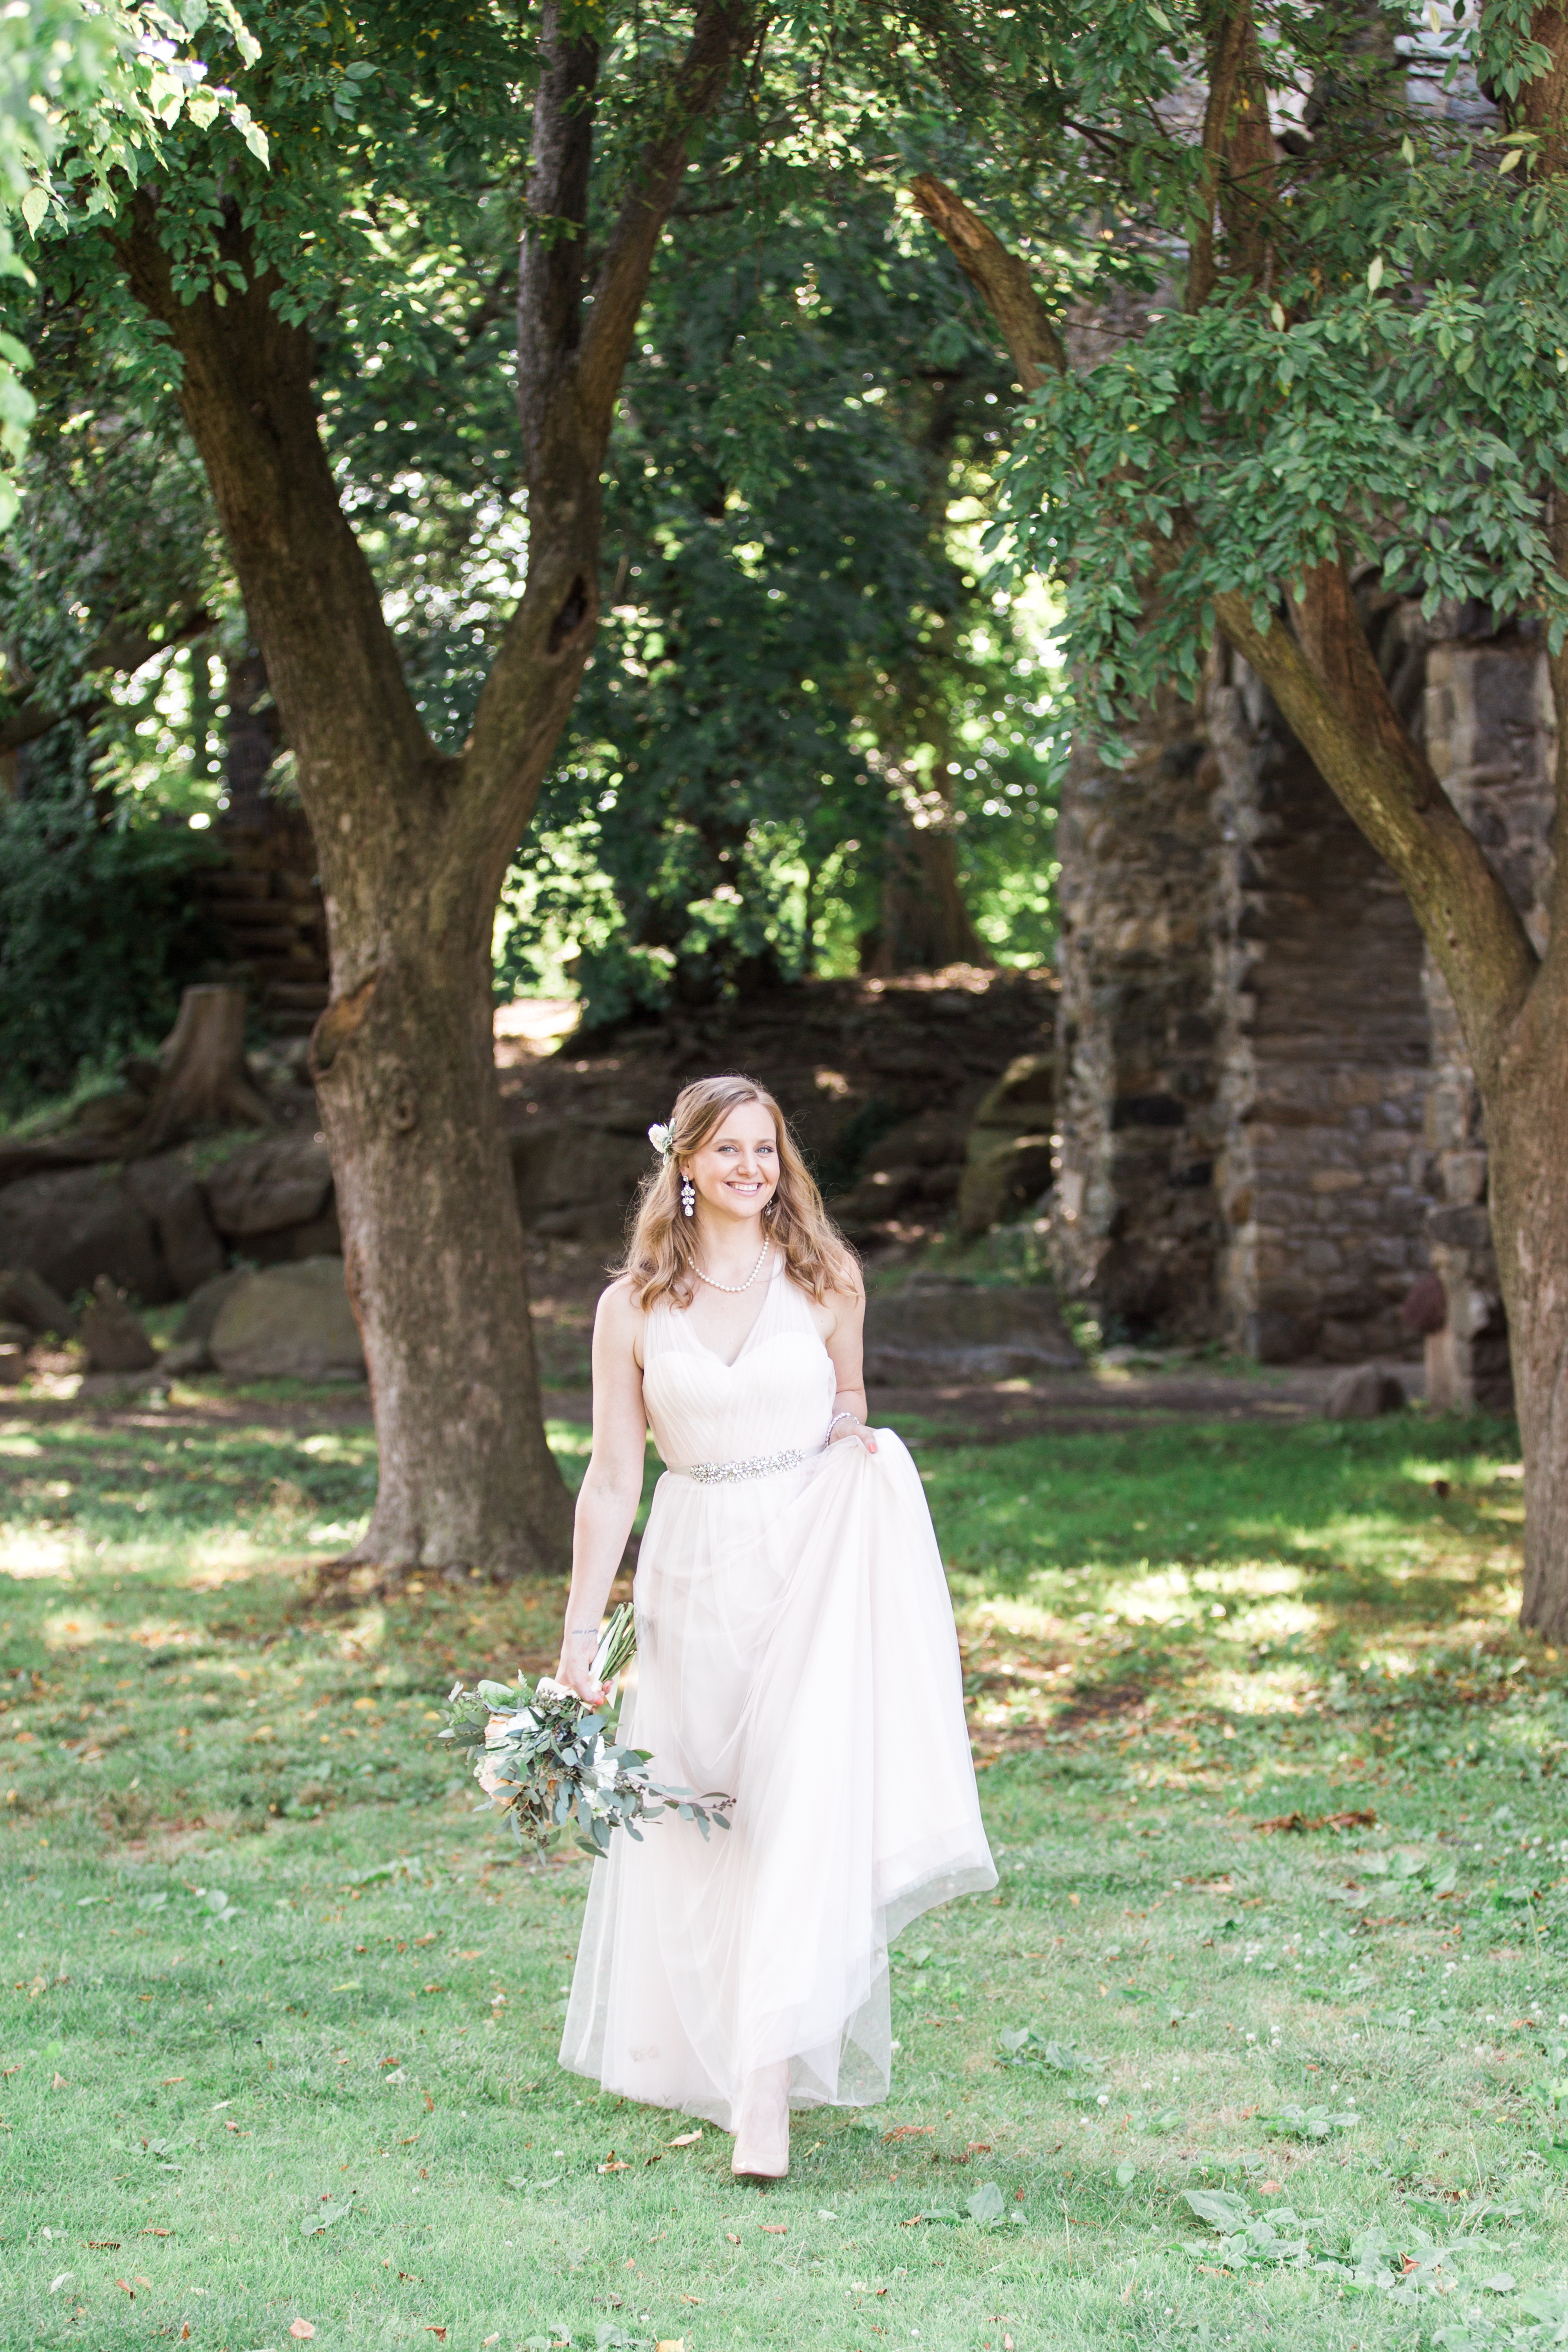 KristinaStaalPhotography-TheCapableBride-13